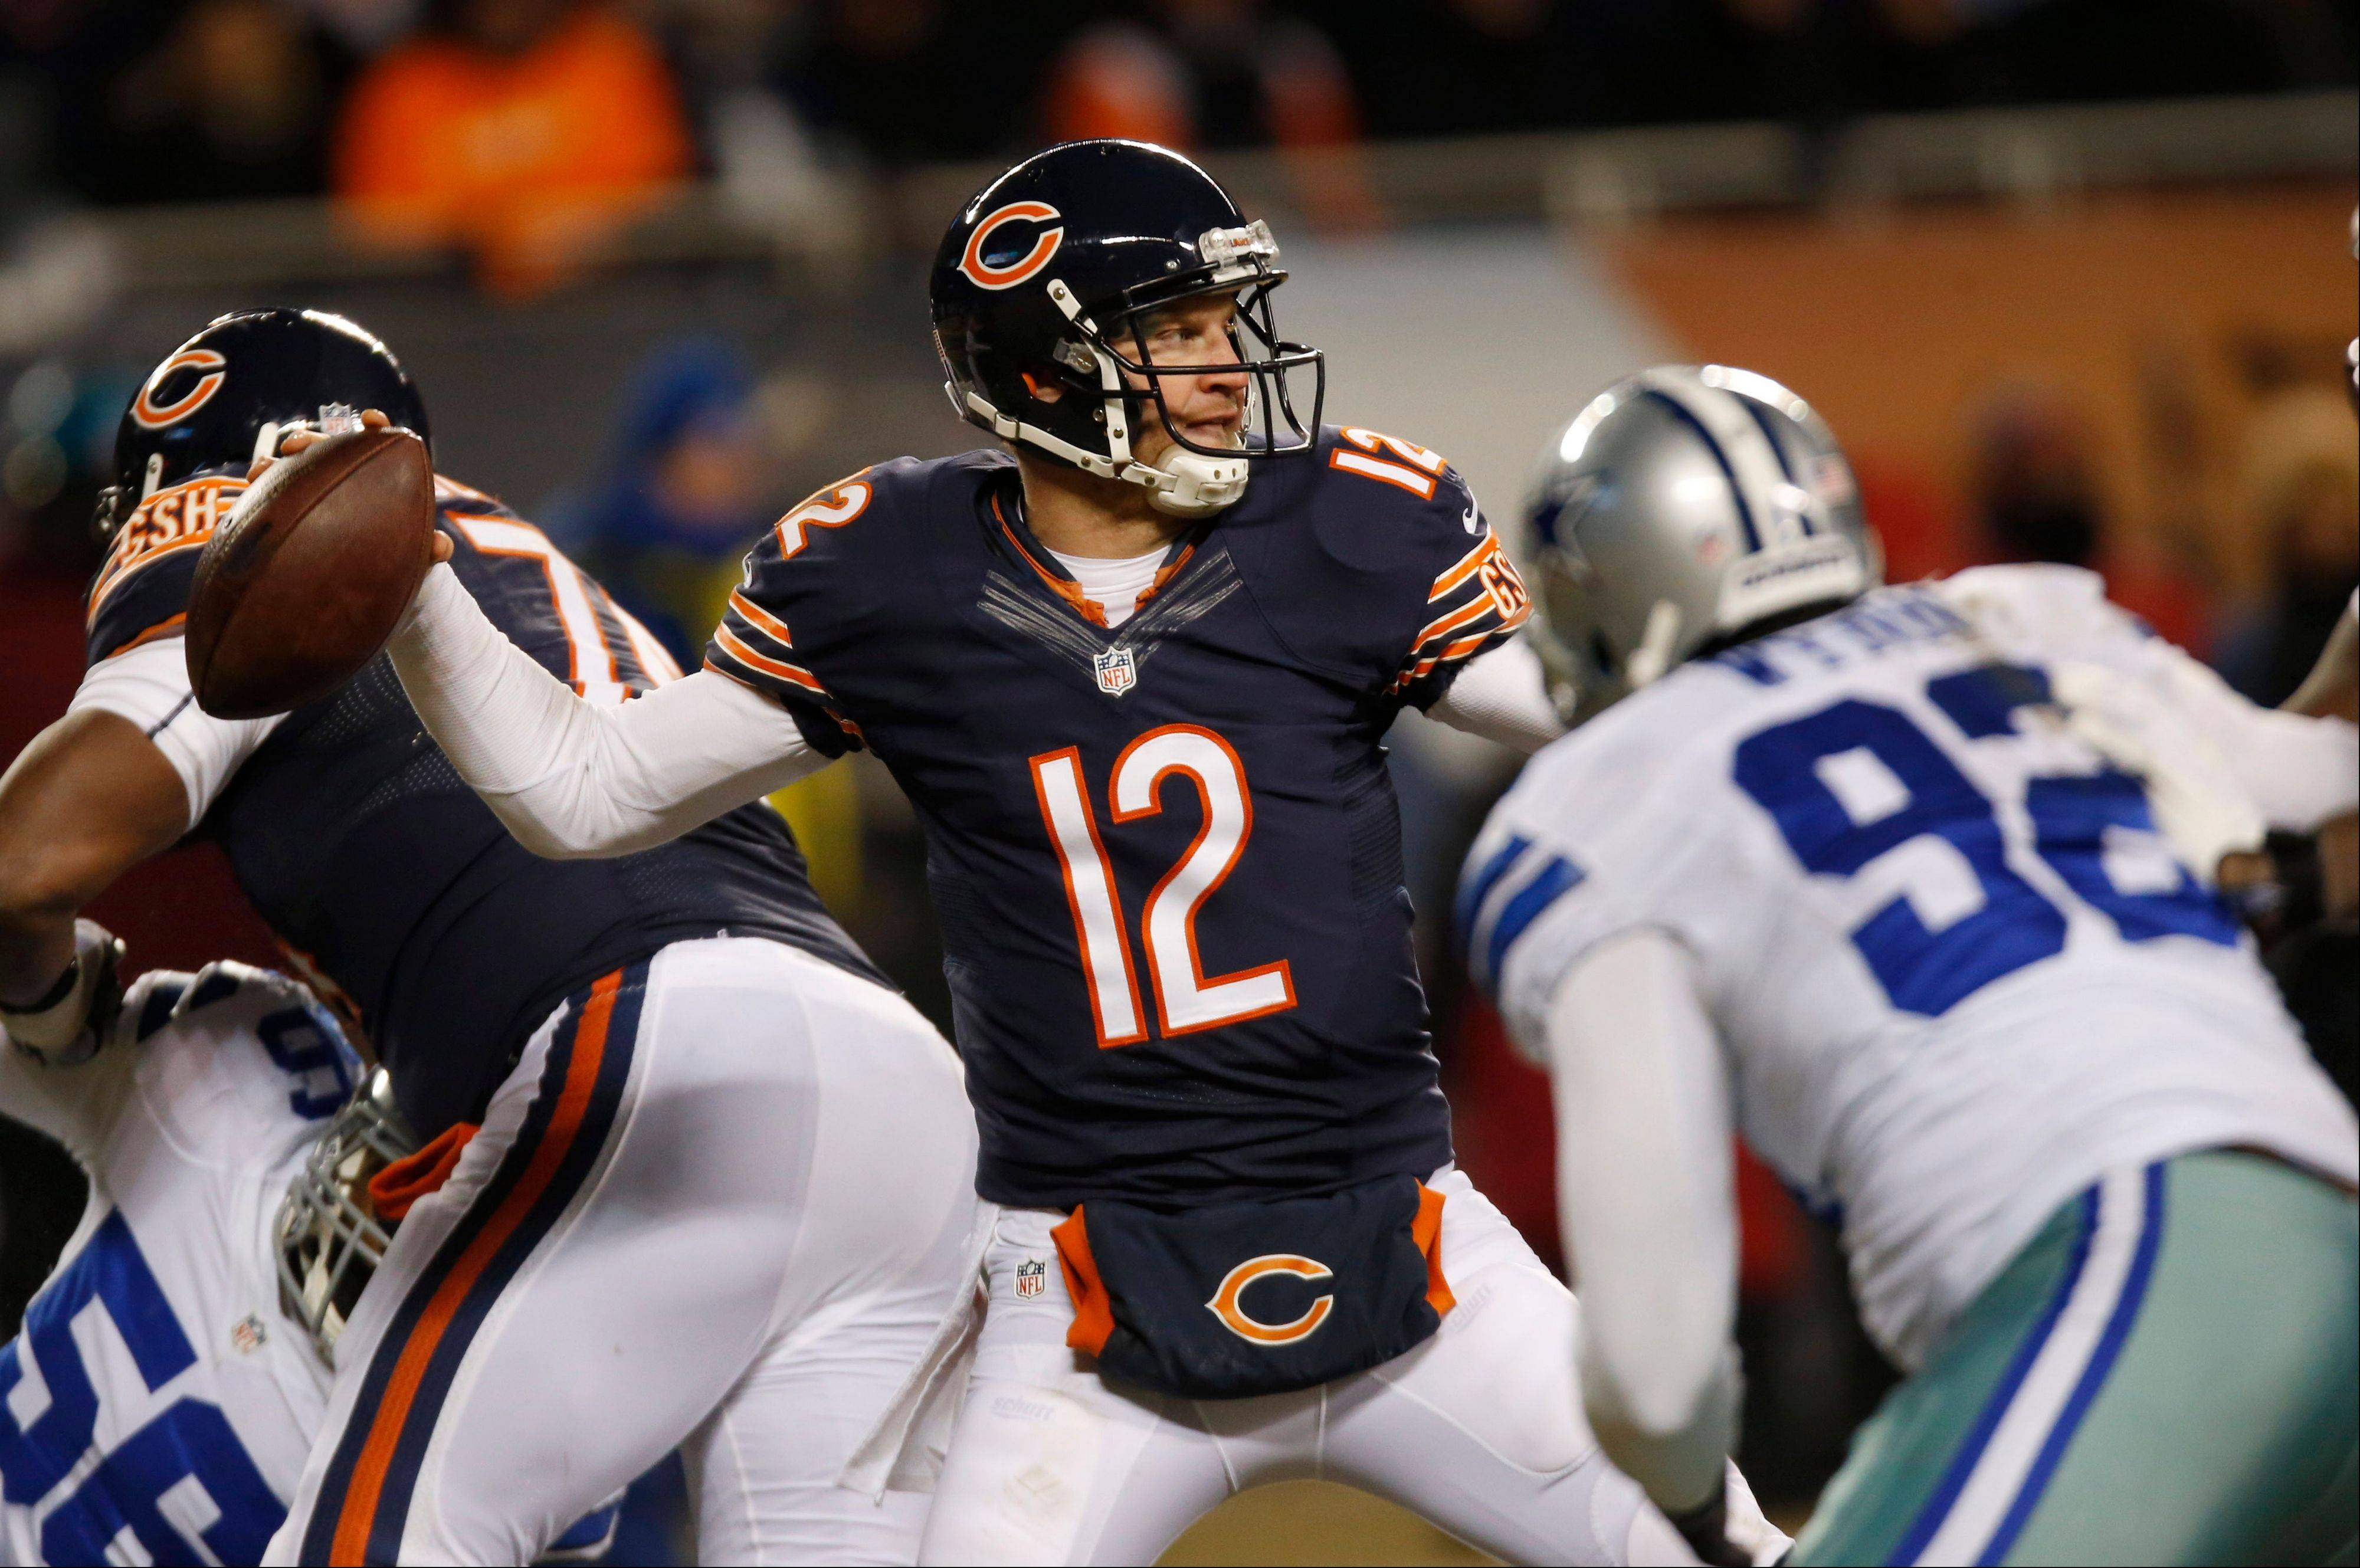 Bears quarterback Josh McCown did it all again in Monday night's victory over the Dallas Cowboys.